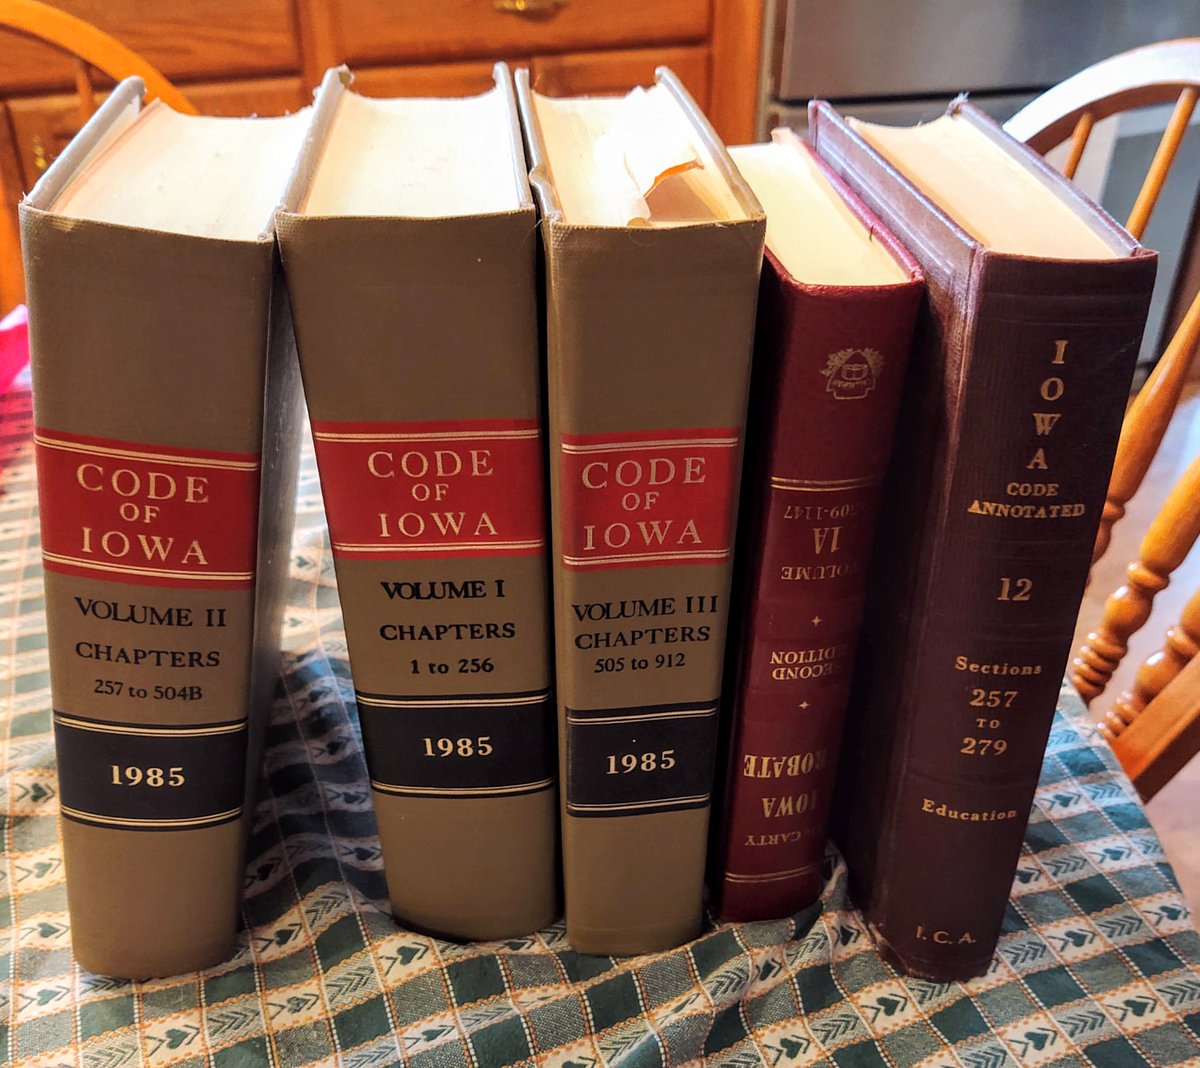 Celebrating reaching 999 followers (THANK YOU!) w/ a  #TuesdayMotivation #writerslift  & 2 Q's.   1. Are we officially #writingcommunity or #WritingCommnunity ? 2. What do you do with old books that not even a library would want? Hard to think of putting these gems in trash.